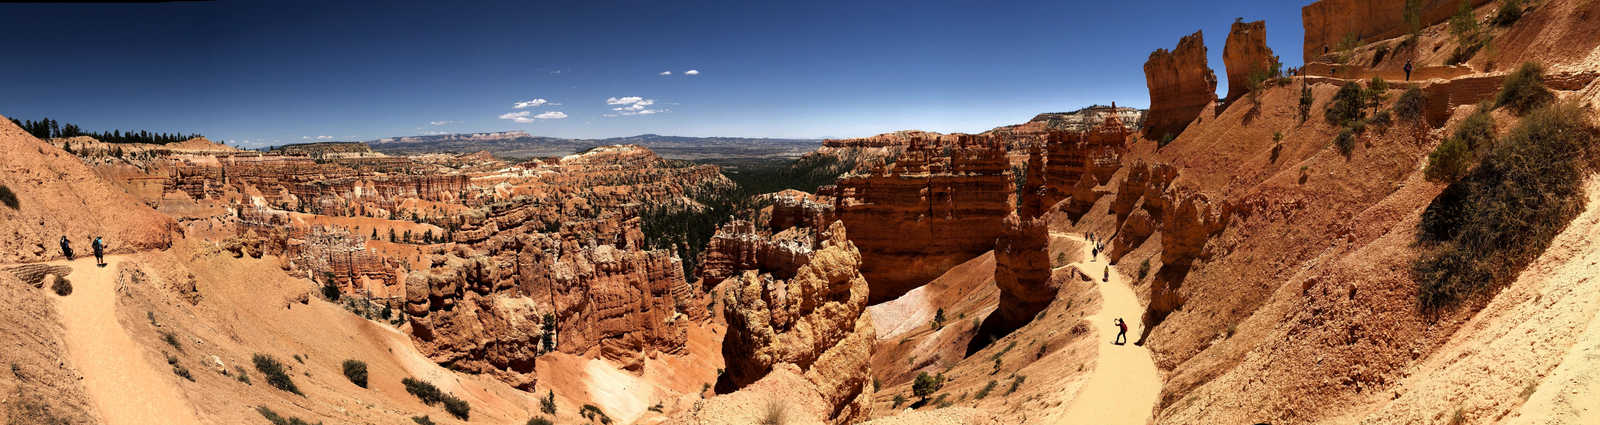 Expansive views of Bryce Canyon brown rocks and blue sky